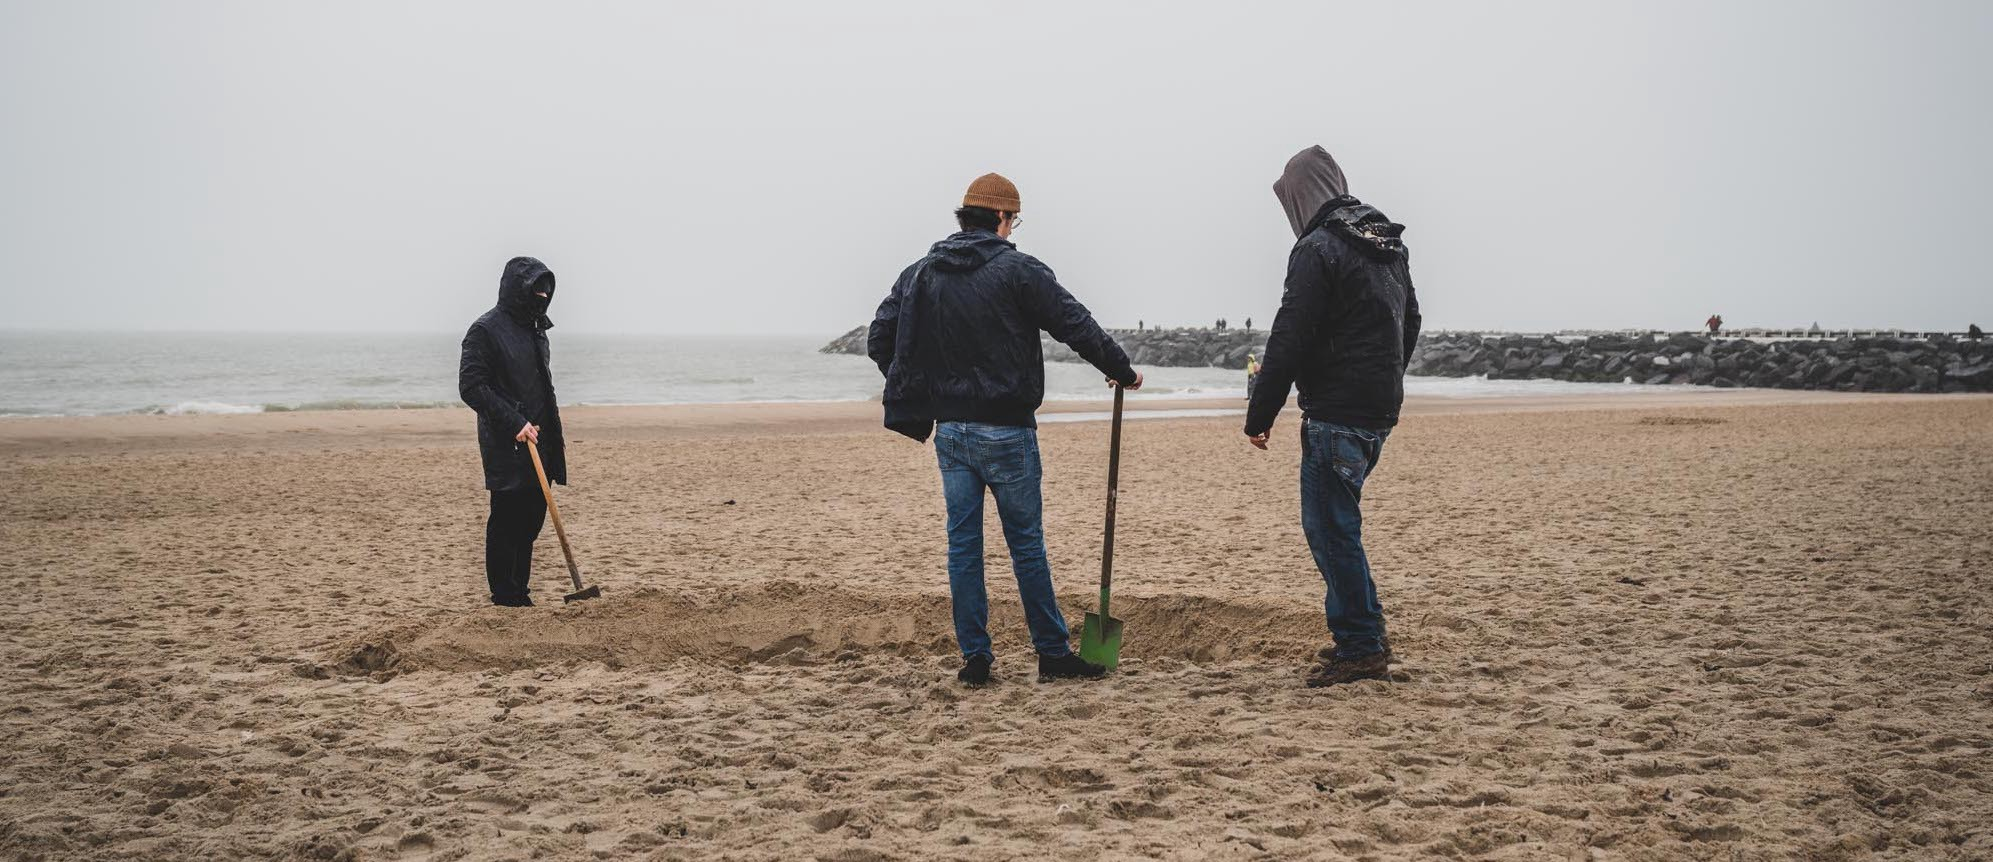 Three men building a sandcastle, or rather discussing it